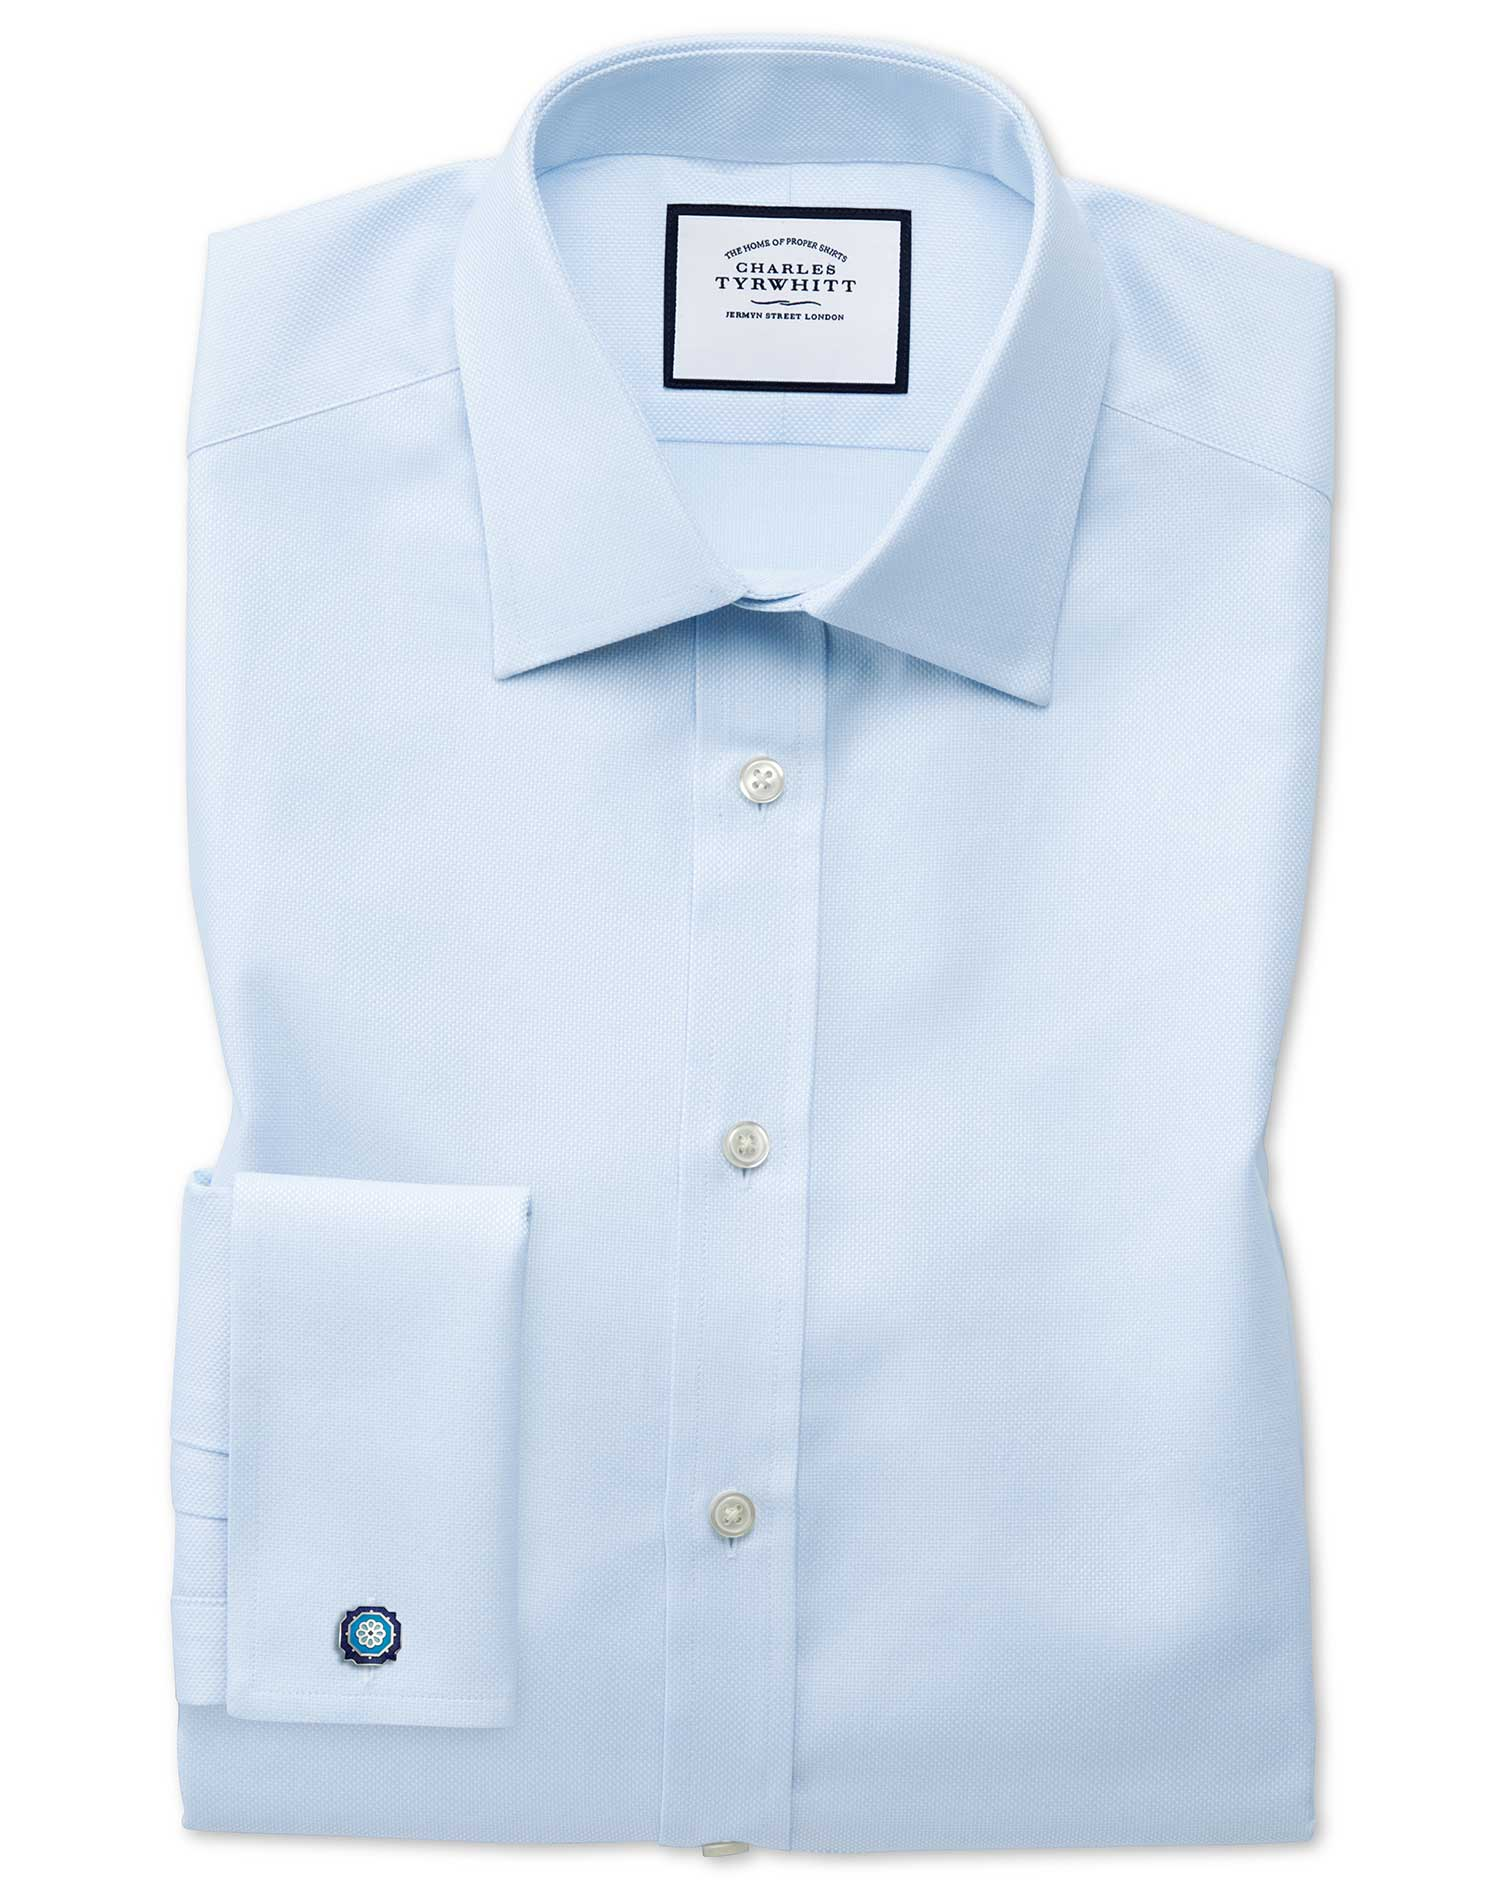 Classic Fit Egyptian Cotton Royal Oxford Sky Blue Formal Shirt Single Cuff Size 16.5/34 by Charles T